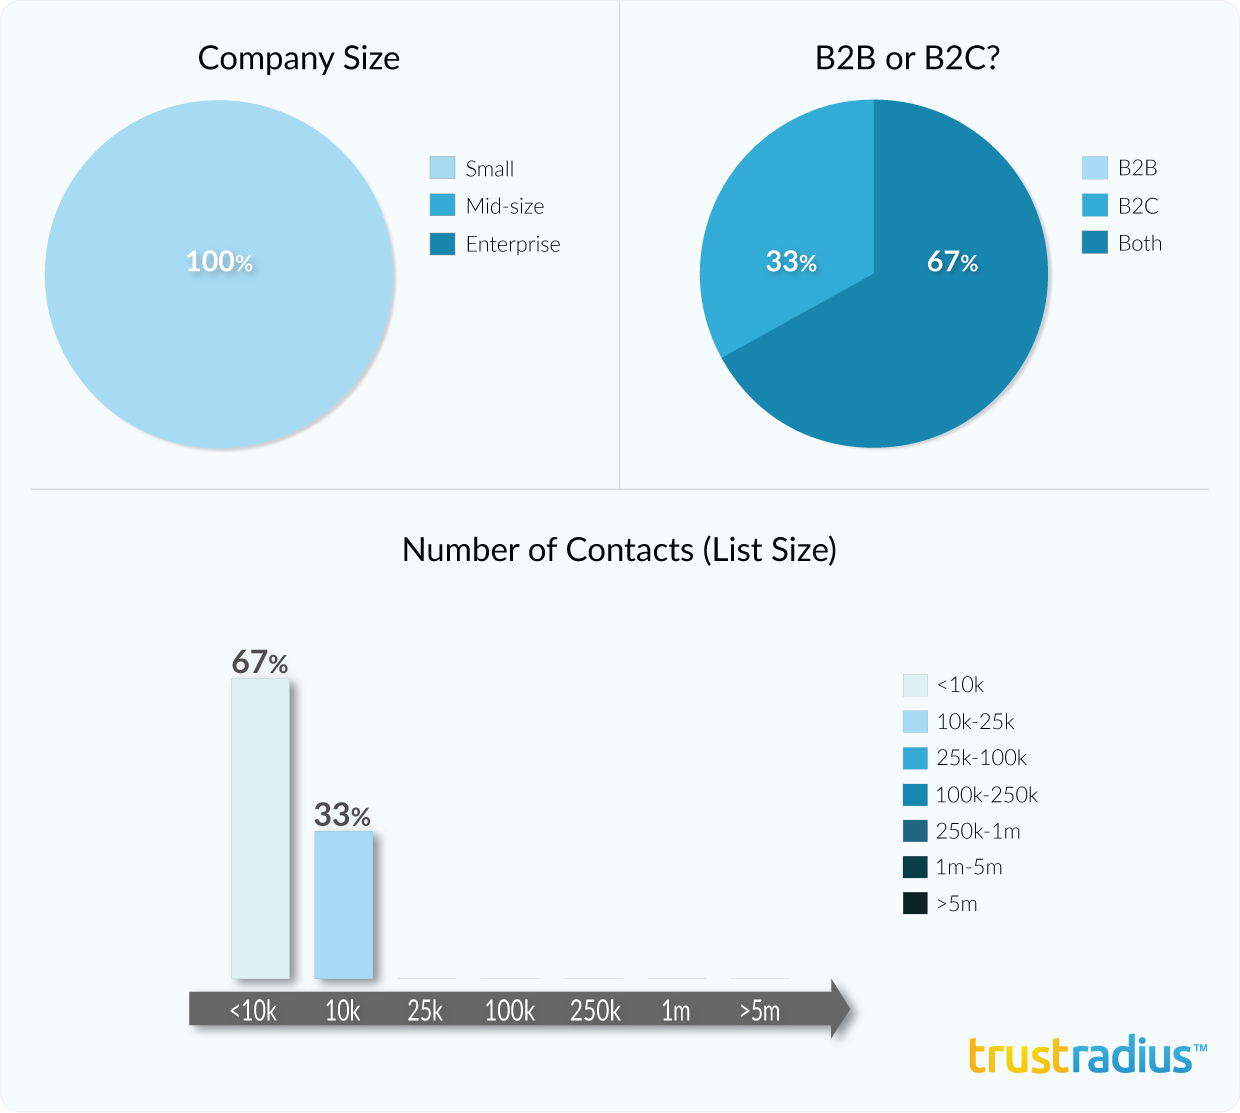 ONTRAPORT customer demographics, including company size, email list size, and B2B or B2C use case.